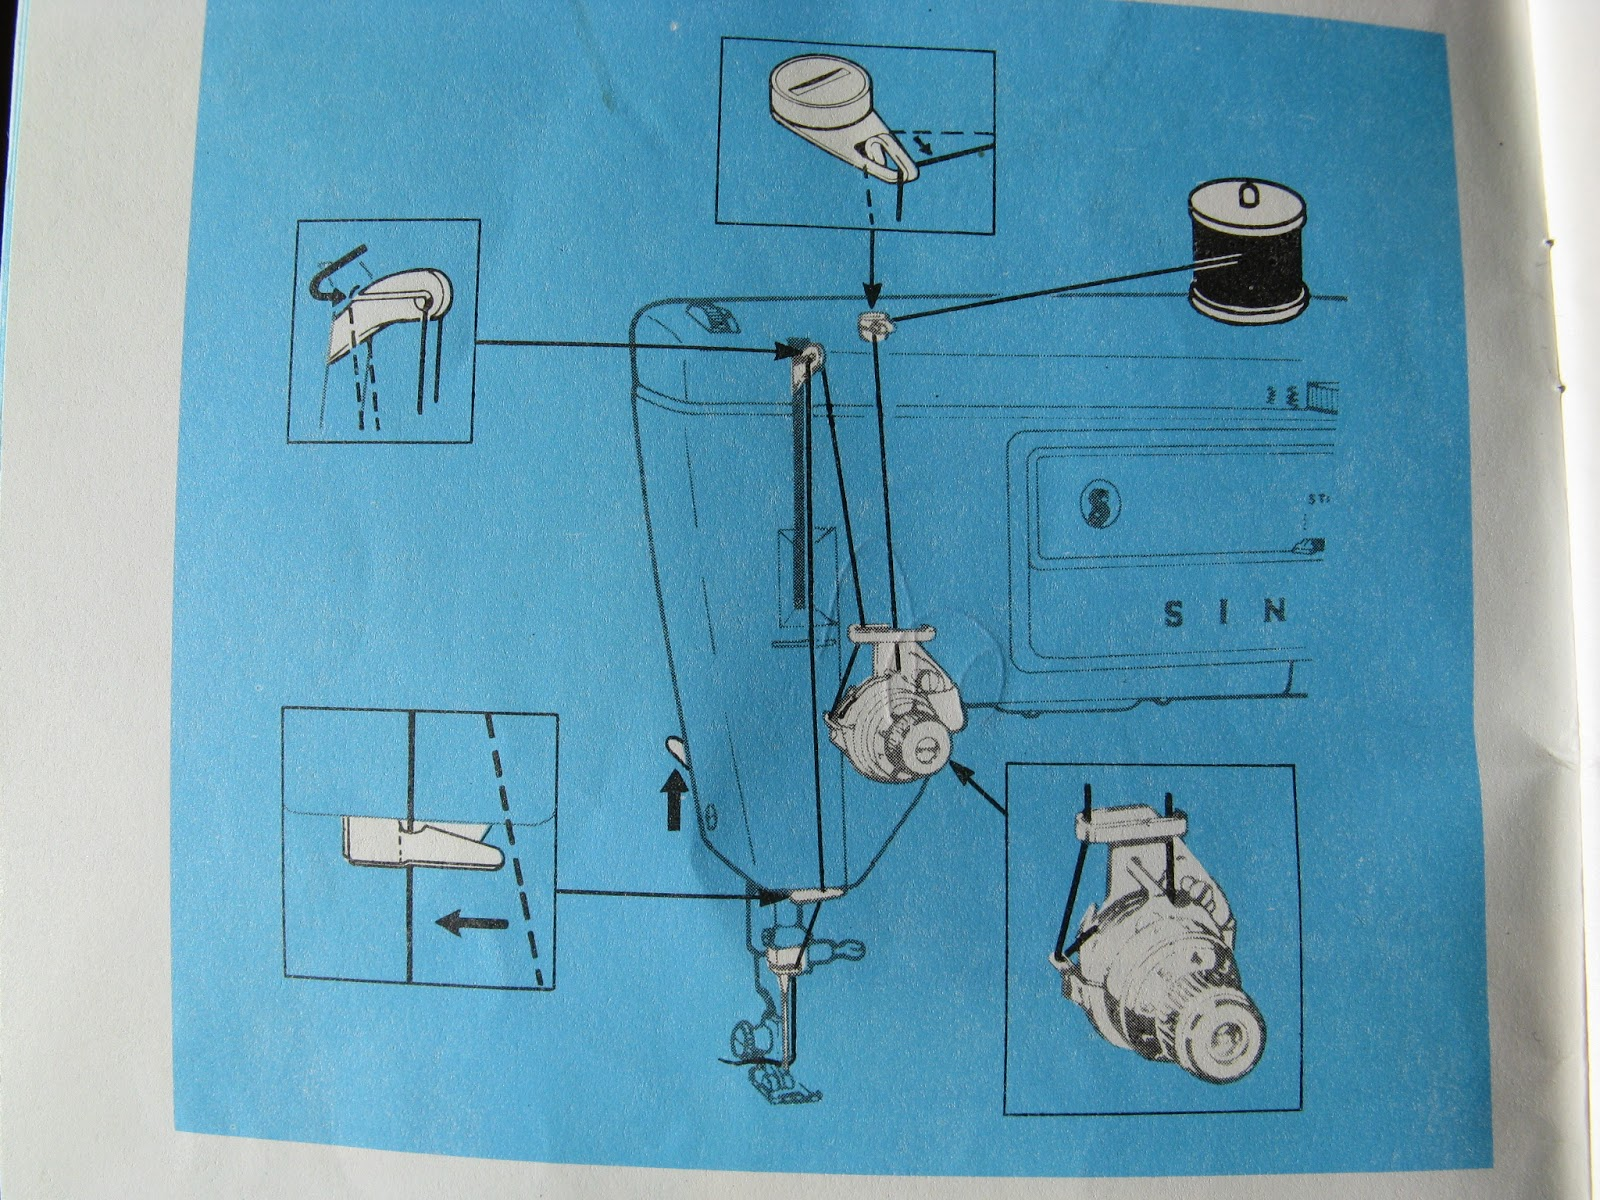 Sewing Machine Nut Singer Stylist 543 Threading Diagram This Next Photo Shows The Interior Of Case Top Where Extension Table Resides When Not In Use I Think A Lot People Dont Realize Is